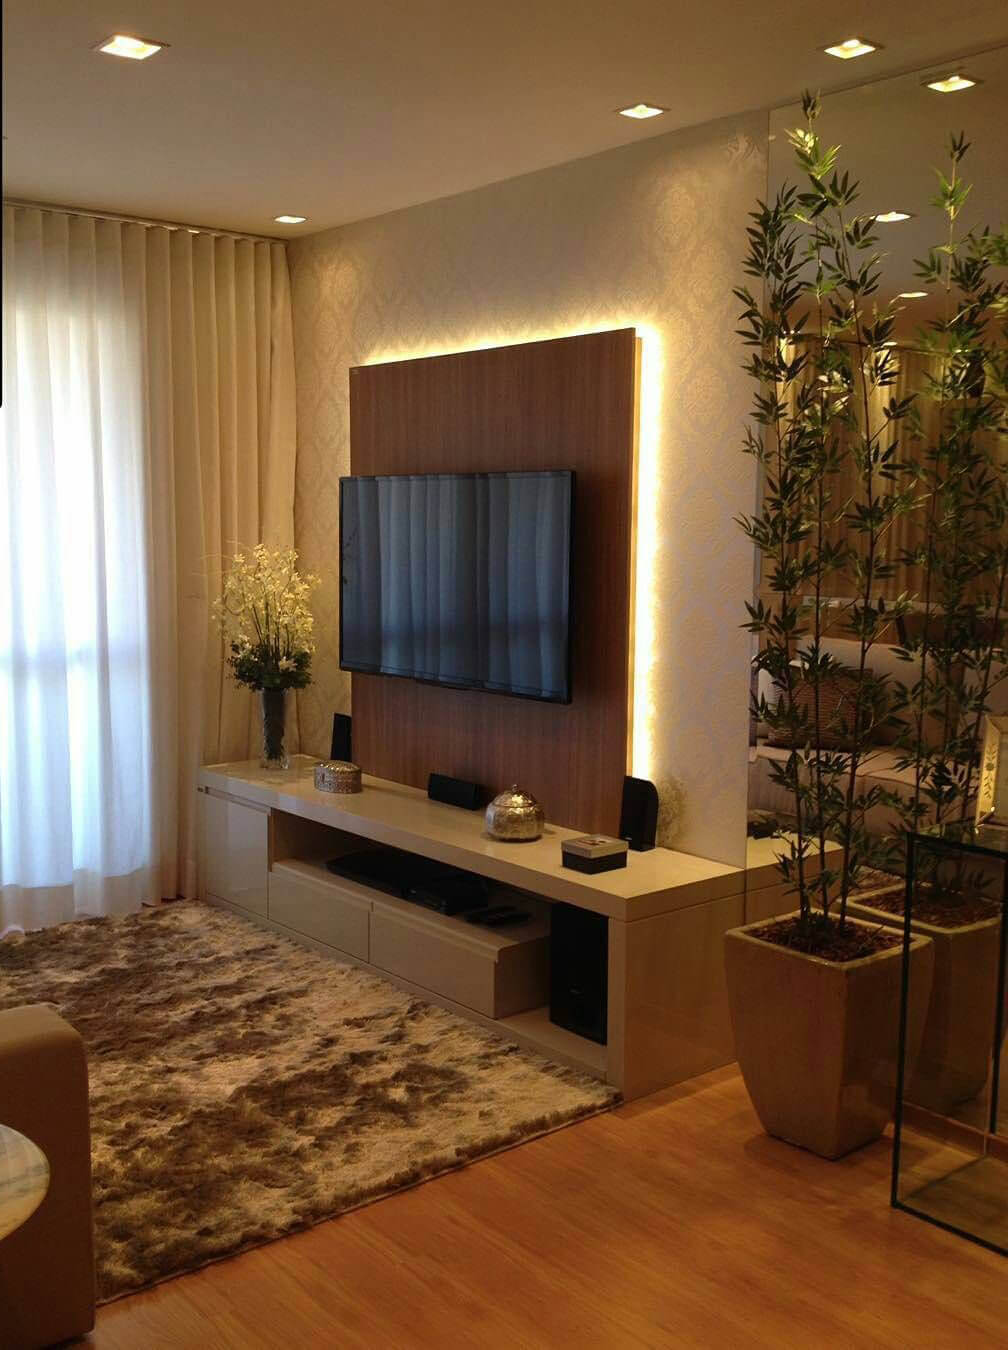 25+ Best Small Living Room Decor and Design Ideas for 2020 on Small Living Room Decorating Ideas  id=81126